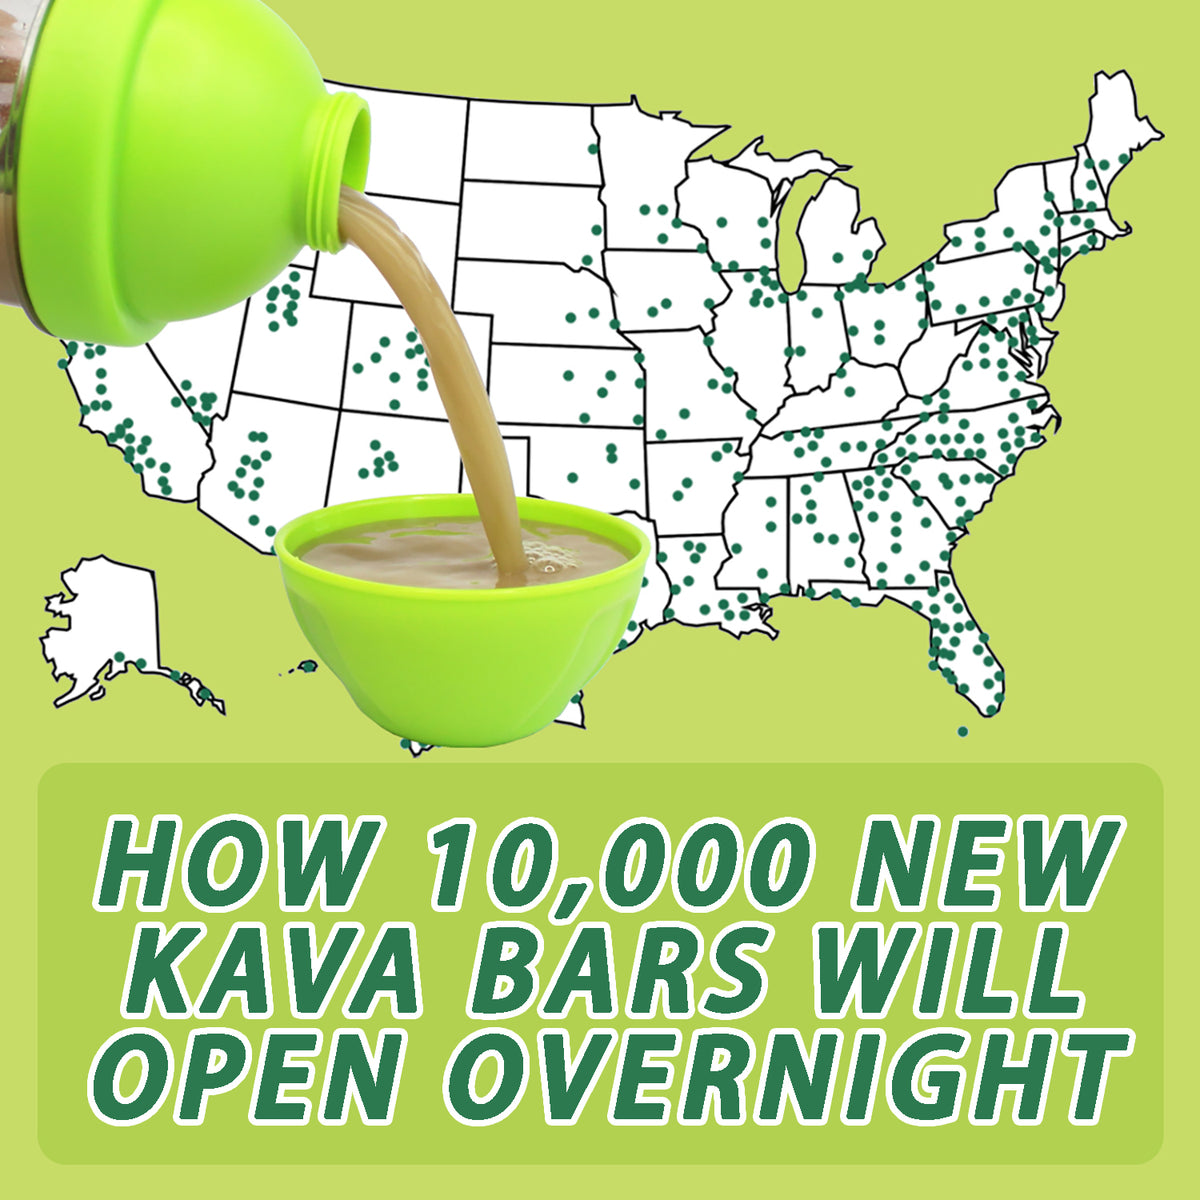 How 10,000 New Kava Bars will open up Overnight across the U.S.